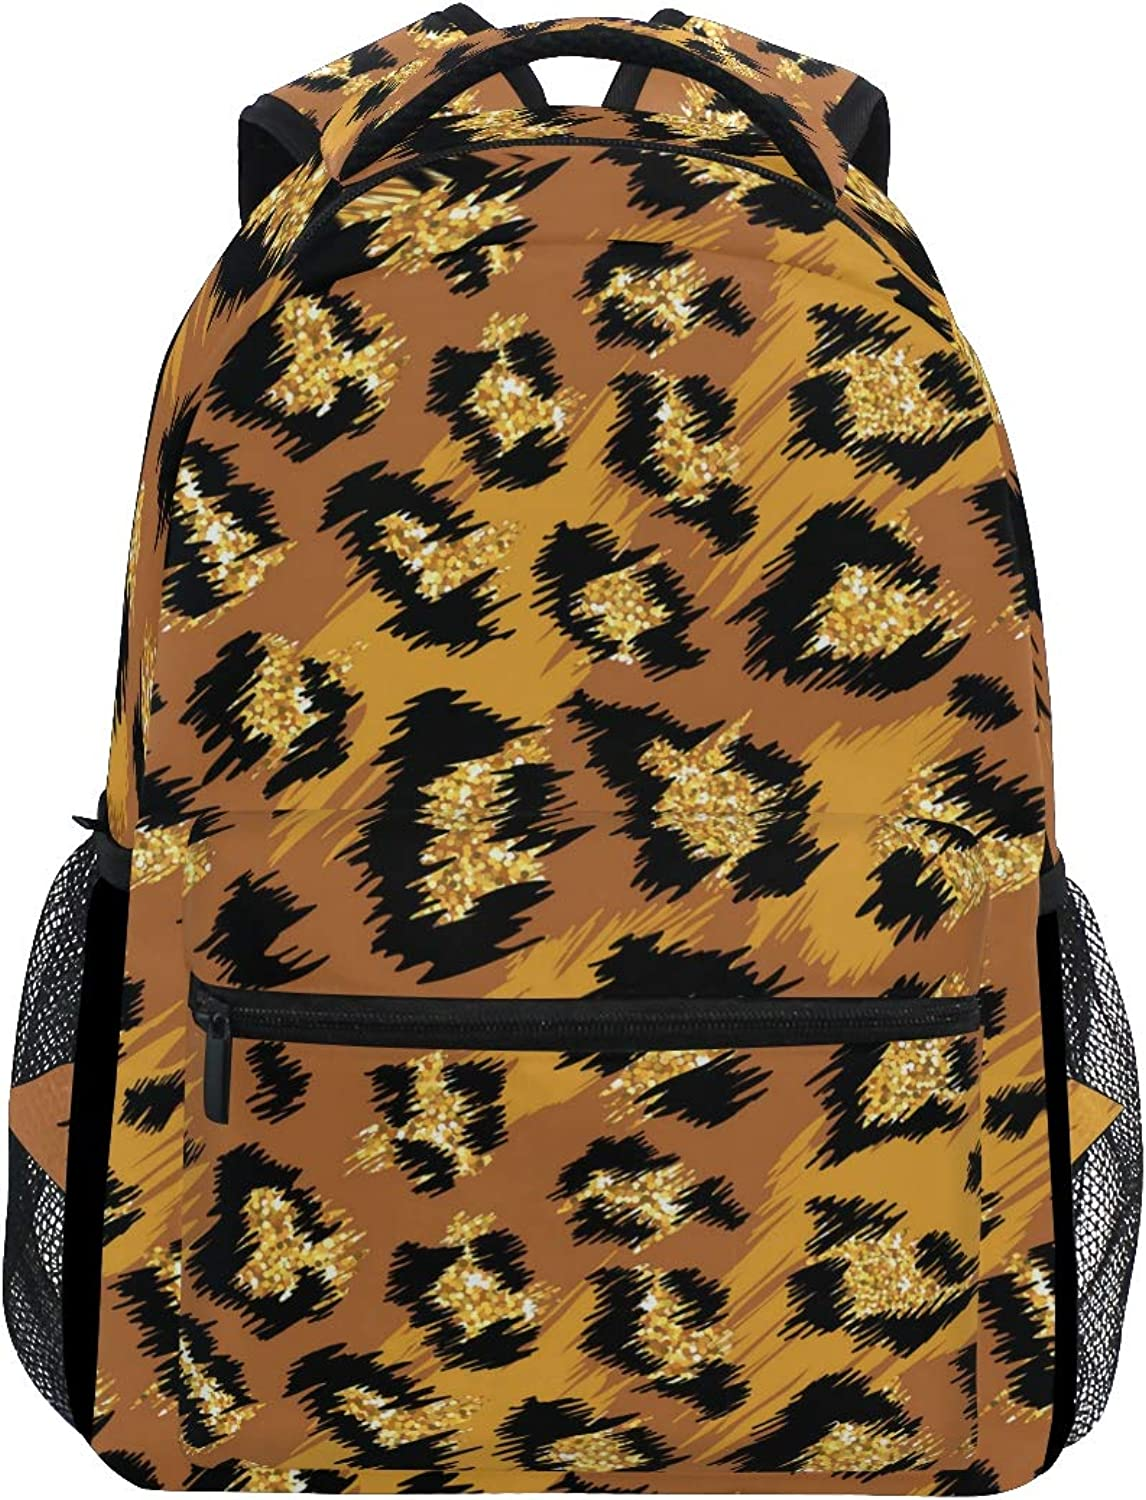 2205b70d2 Bright gold Leopard Print Large Backpack Travel Outdoor Sports Laptop  Backpack for Women & Men College